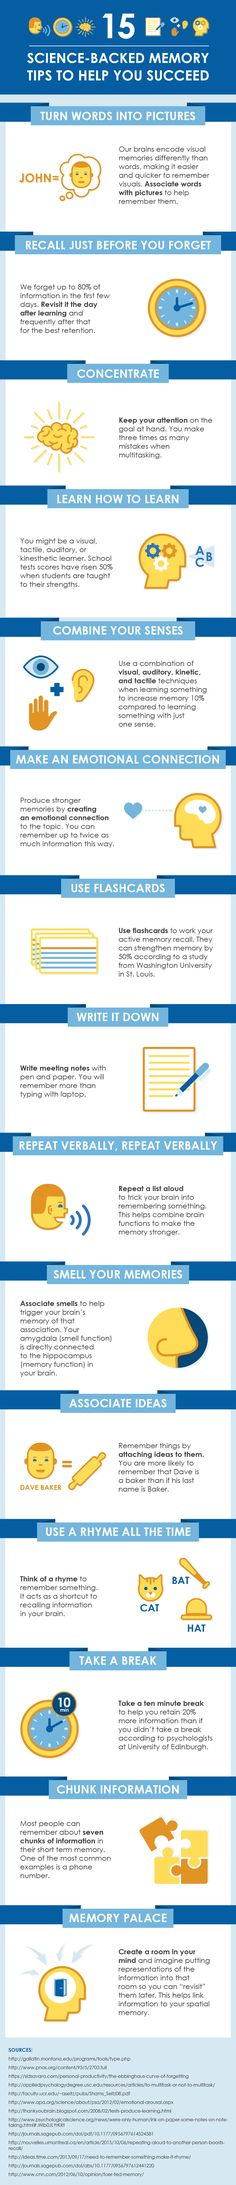 15 Science-Backed Memory Tips Infographic - http://elearninginfographics.com/15-science-backed-memory-tips-infographic/